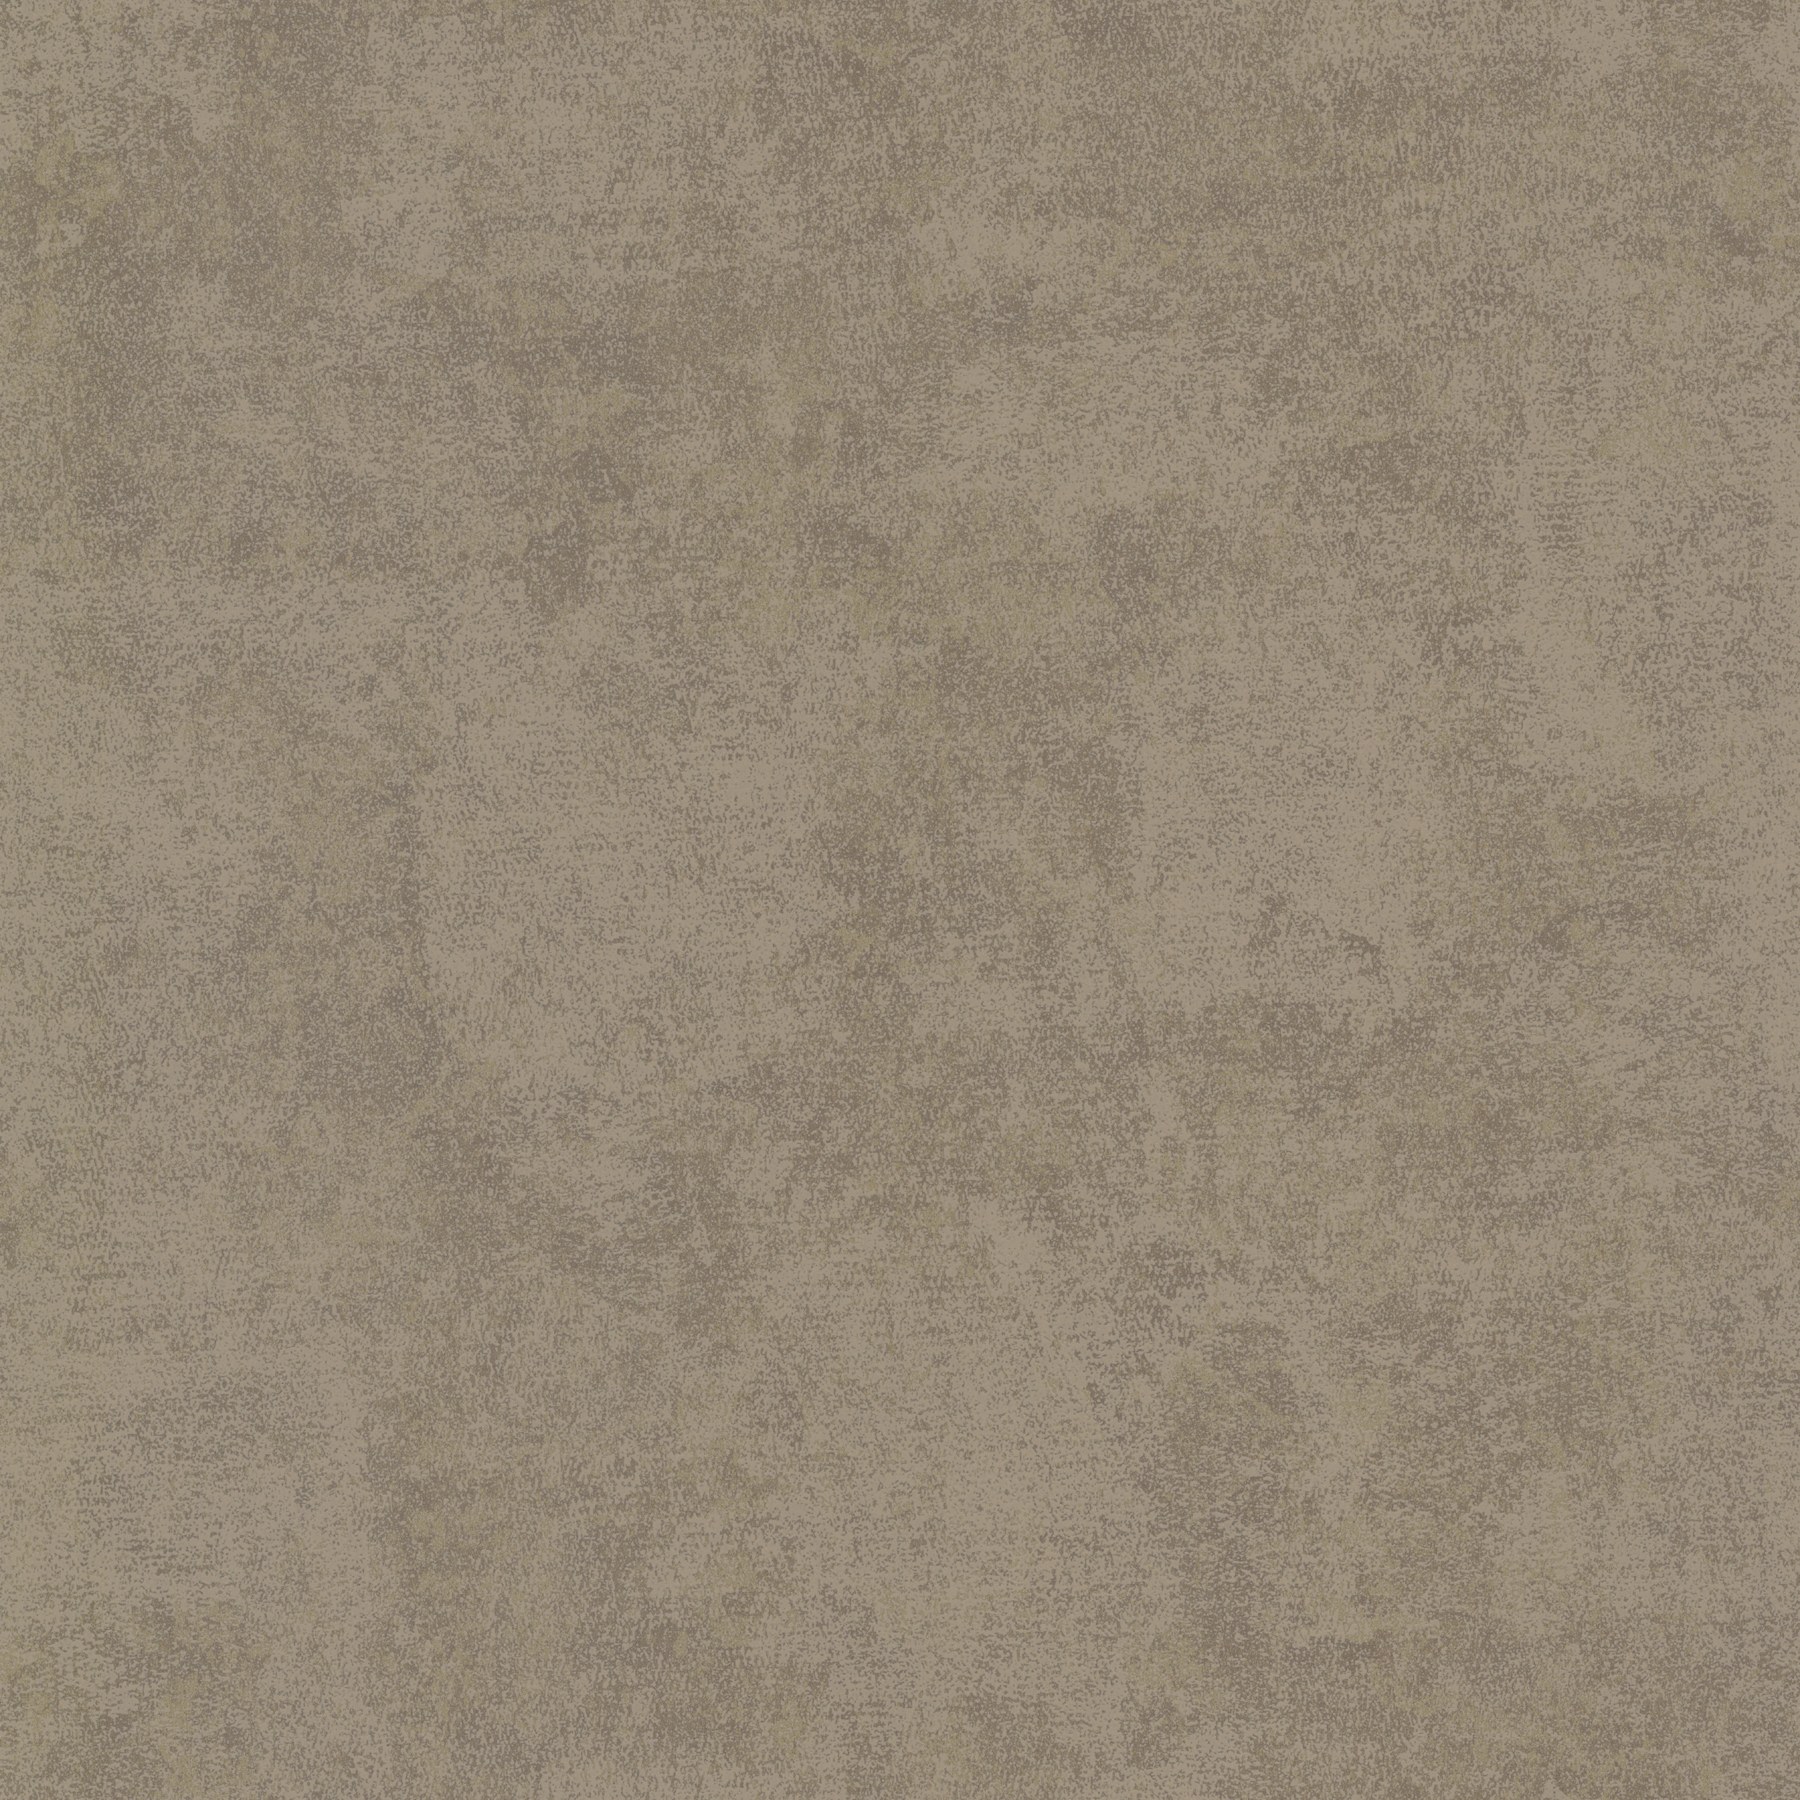 Picture of Baird Brown Patina Texture Wallpaper